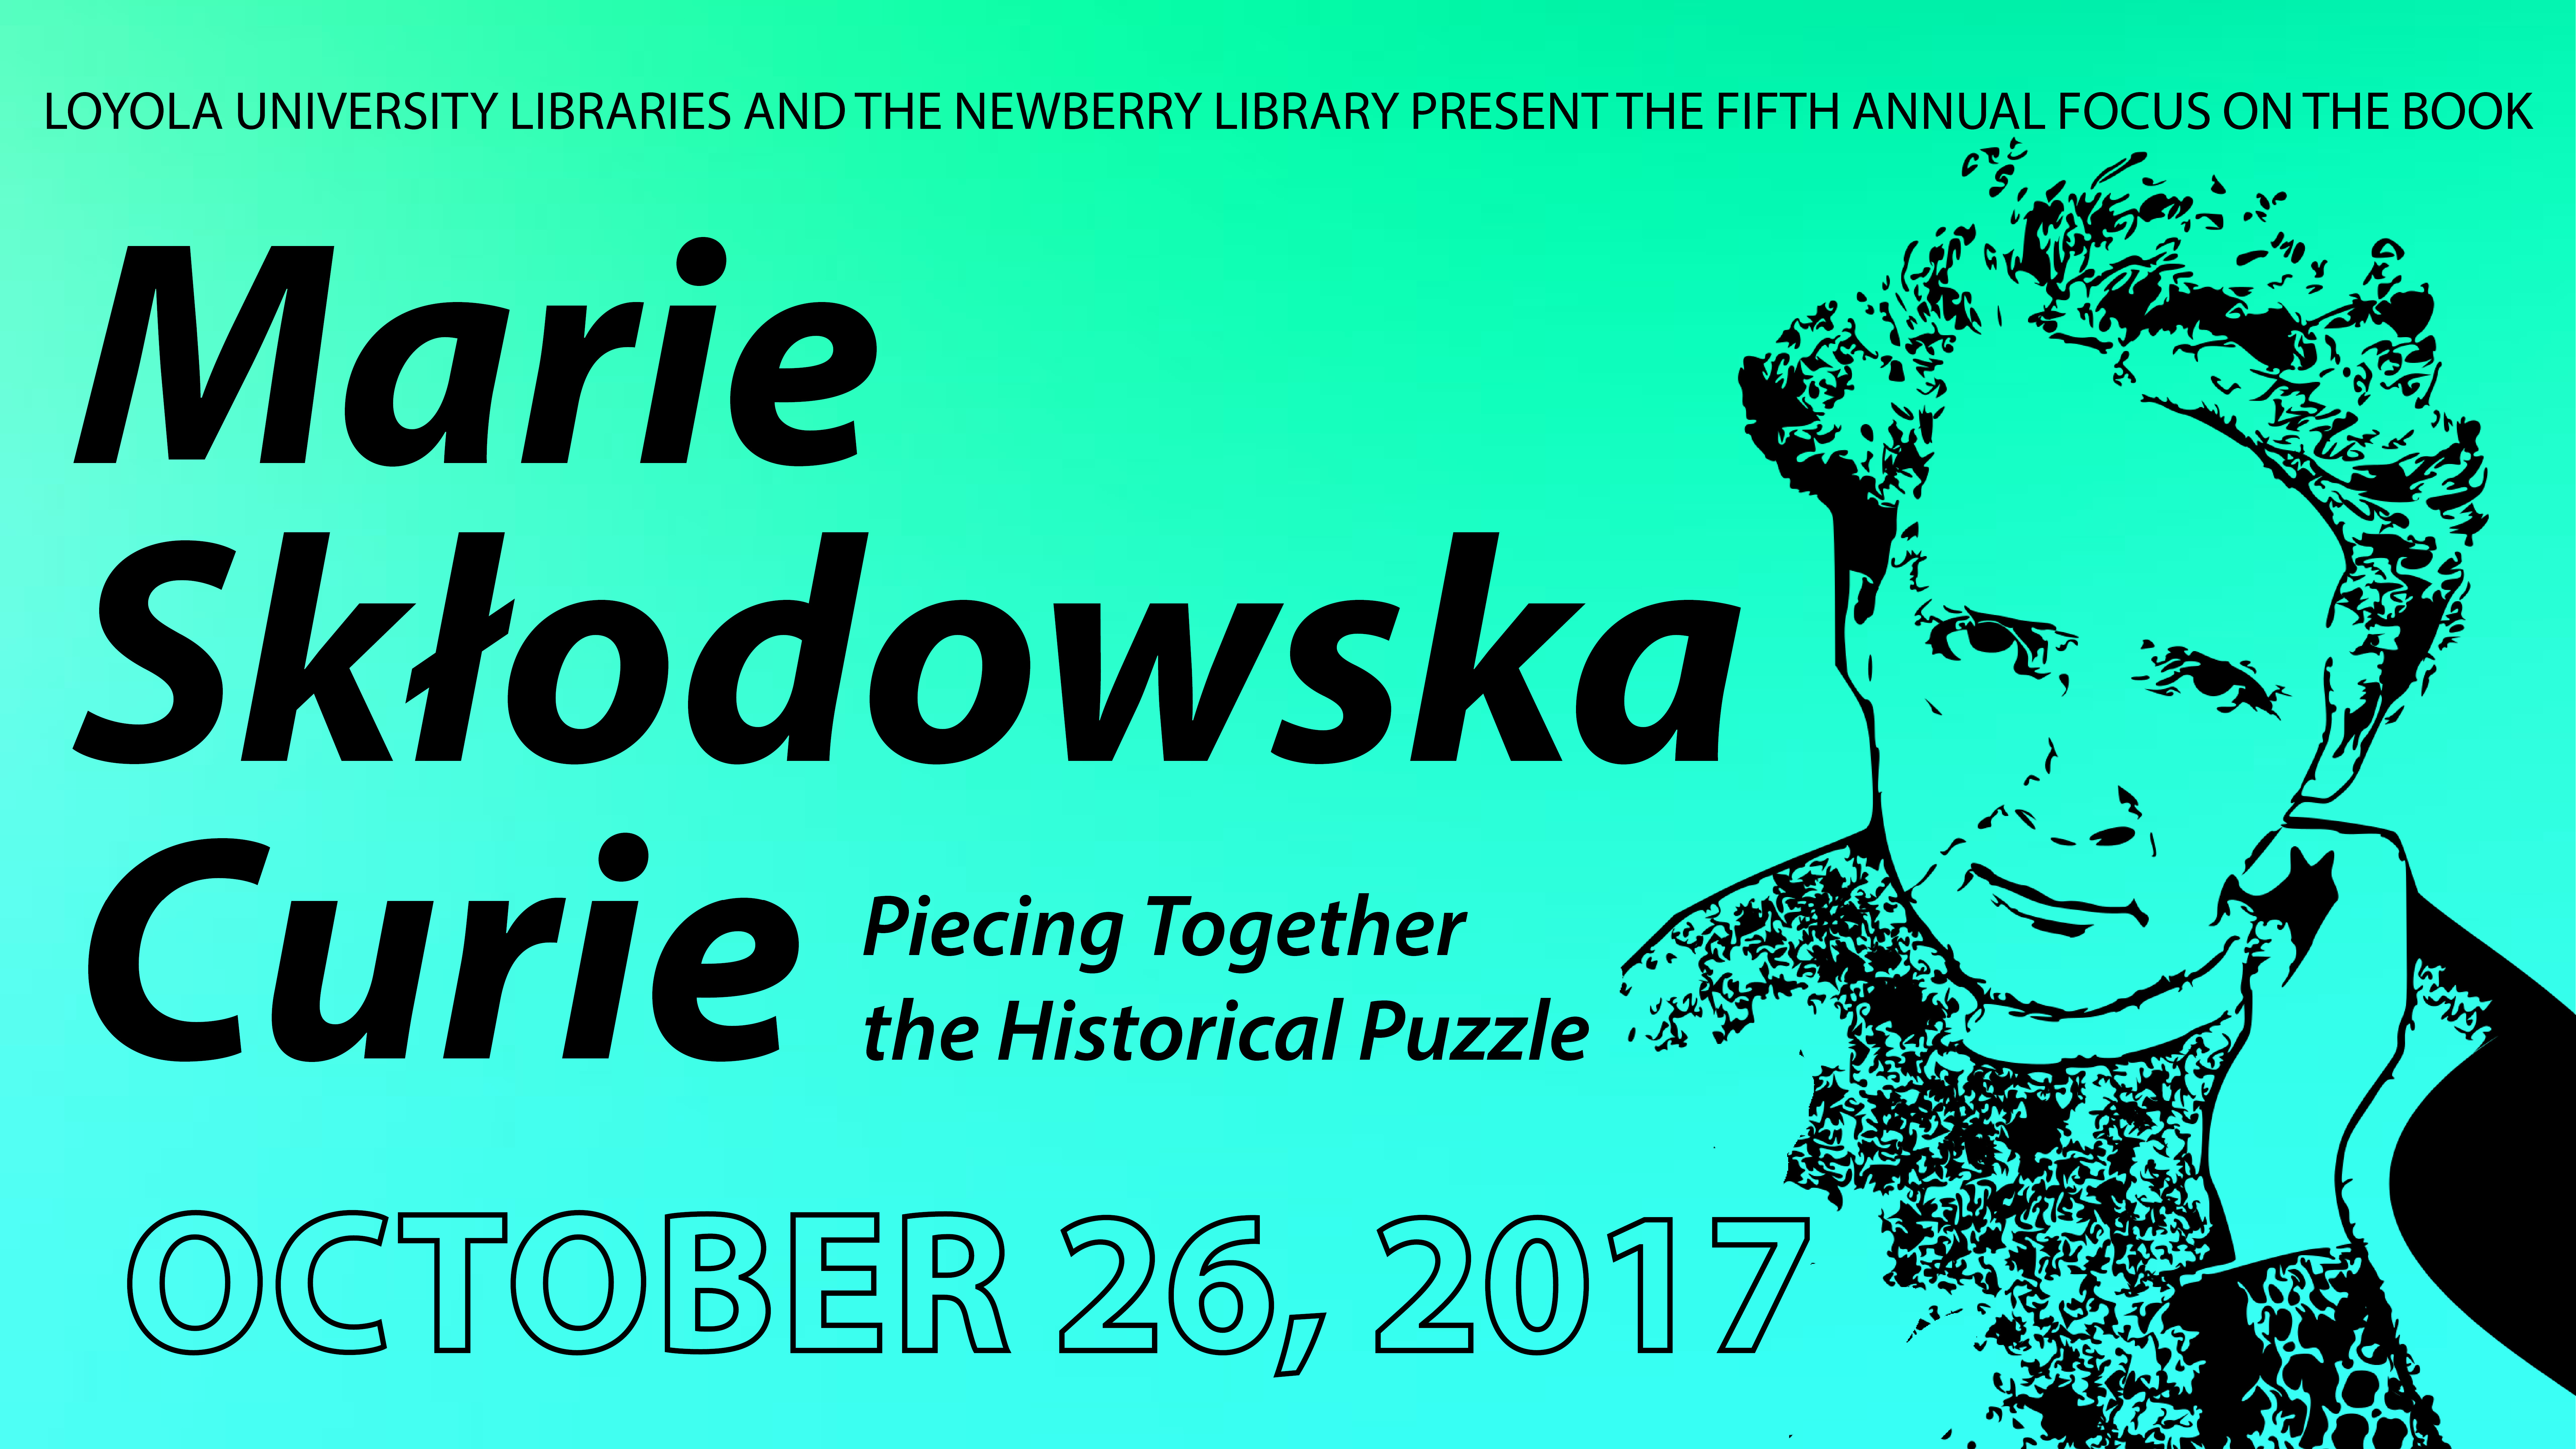 Marie Skłodowska Curie: Piecing Together the Historical Puzzle